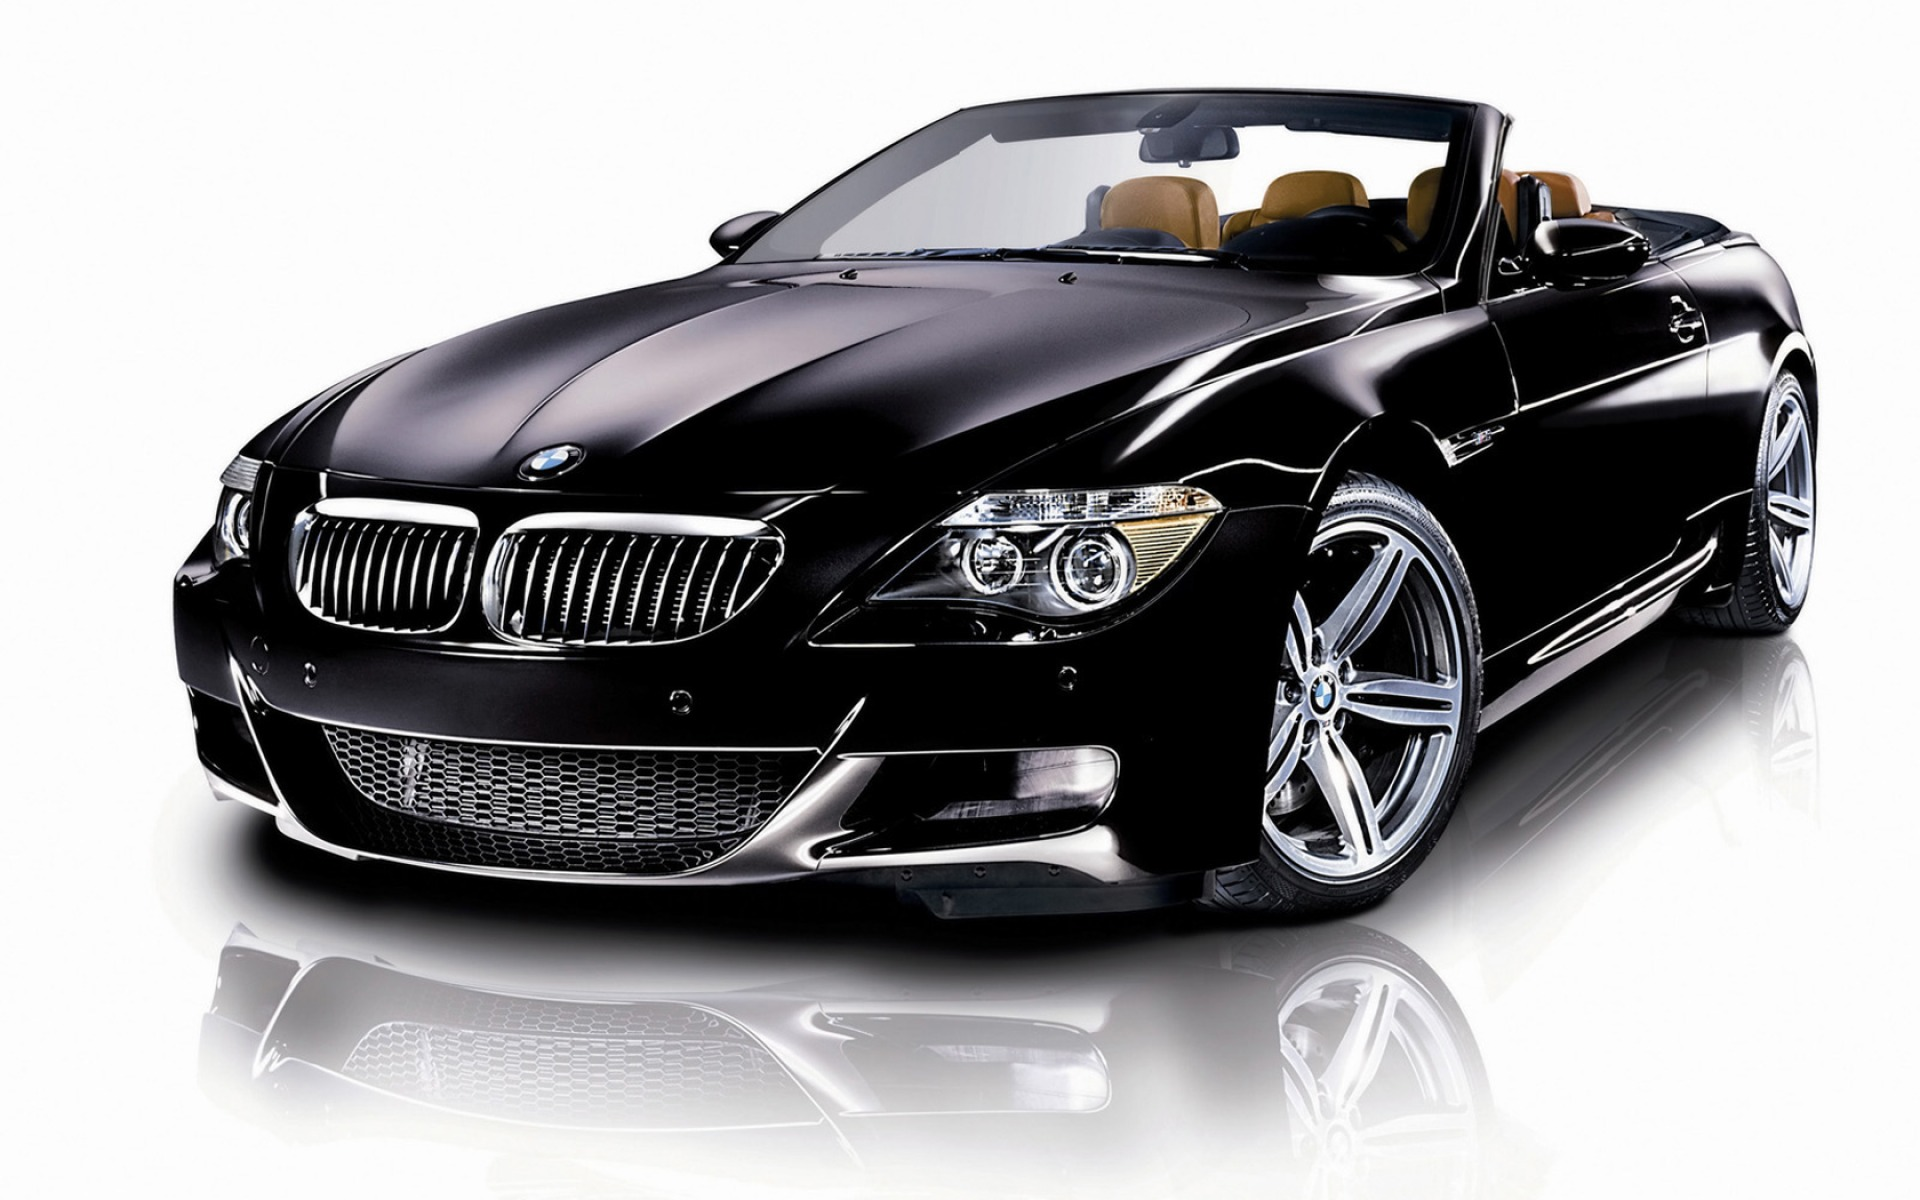 Ultrablogus  Personable Bmw Car Wallpaper Wallpapers For Free Download About   With Lovely Bmw M Convertible Wallpaper Bmw Cars With Astounding  Malibu Interior Parts Also Ef Interior In Addition  Pontiac Gto Interior And Roll Down Door Interior As Well As  Chevy Silverado Interior Parts Additionally Led Light For Cars Interior From Allfreedownloadcom With Ultrablogus  Lovely Bmw Car Wallpaper Wallpapers For Free Download About   With Astounding Bmw M Convertible Wallpaper Bmw Cars And Personable  Malibu Interior Parts Also Ef Interior In Addition  Pontiac Gto Interior From Allfreedownloadcom